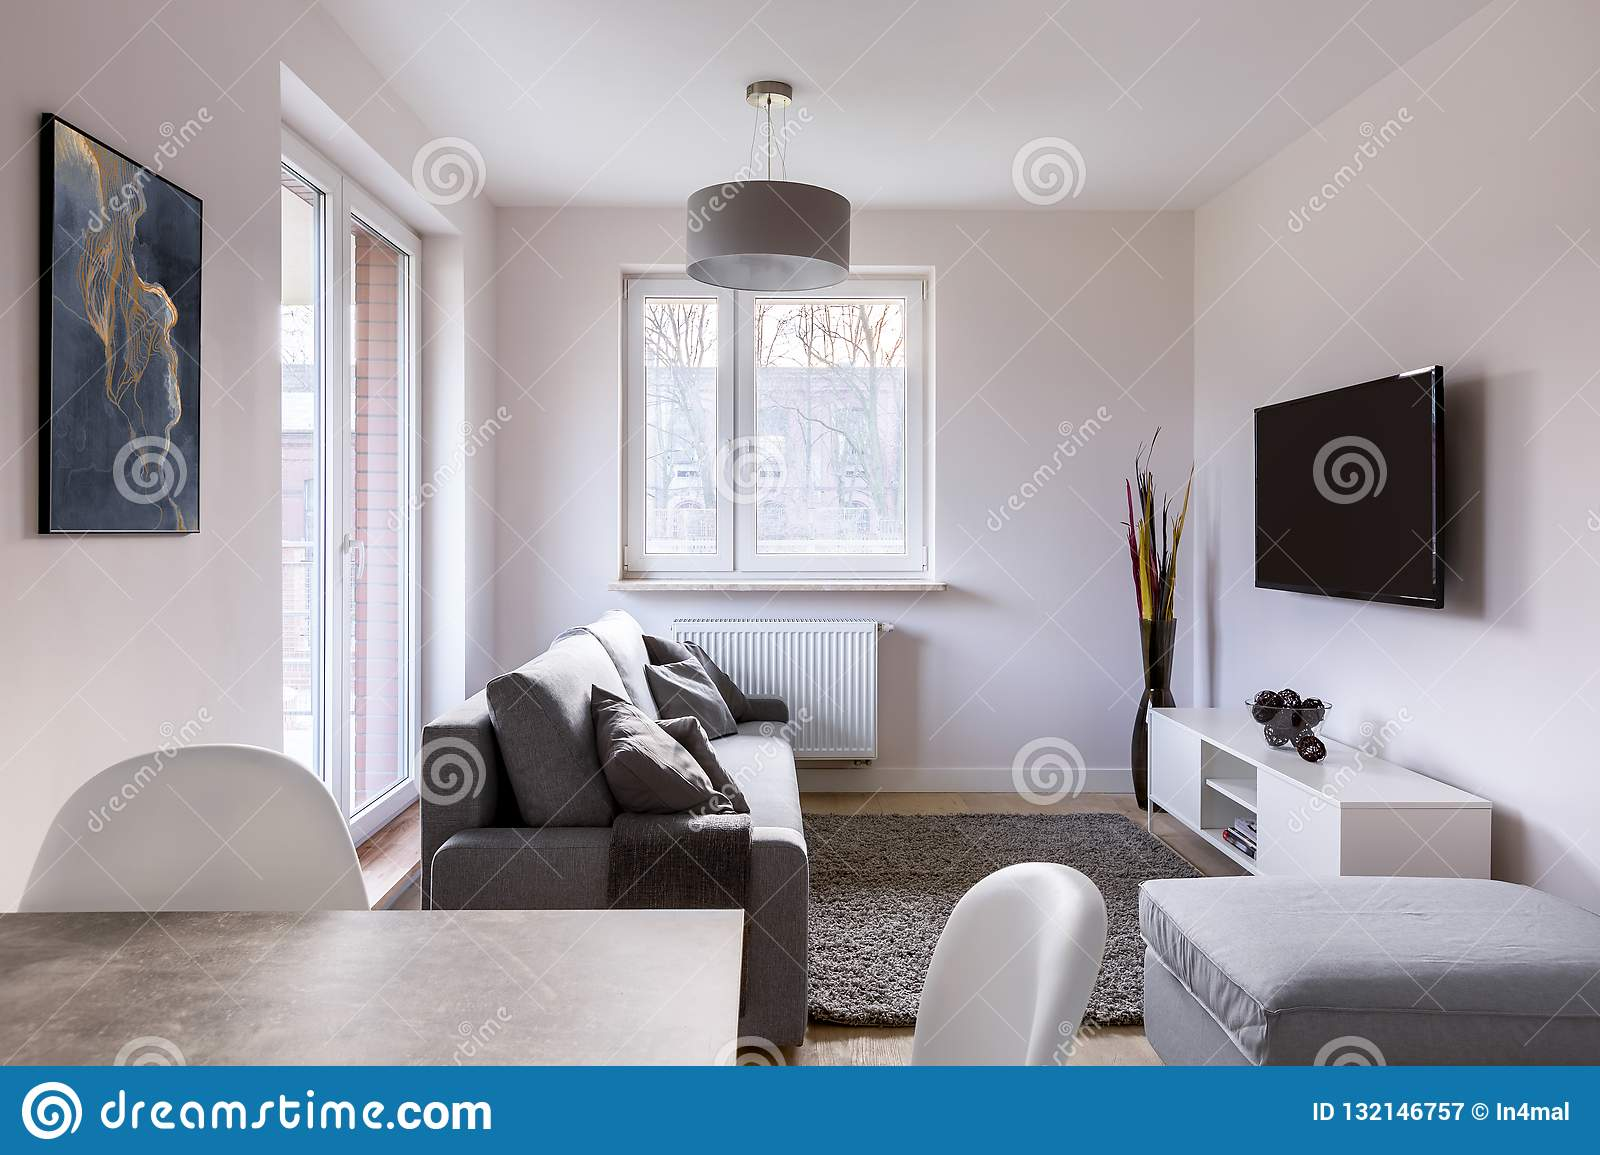 Living Room With Dining Table Stock Image Image Of Window Screen 132146757